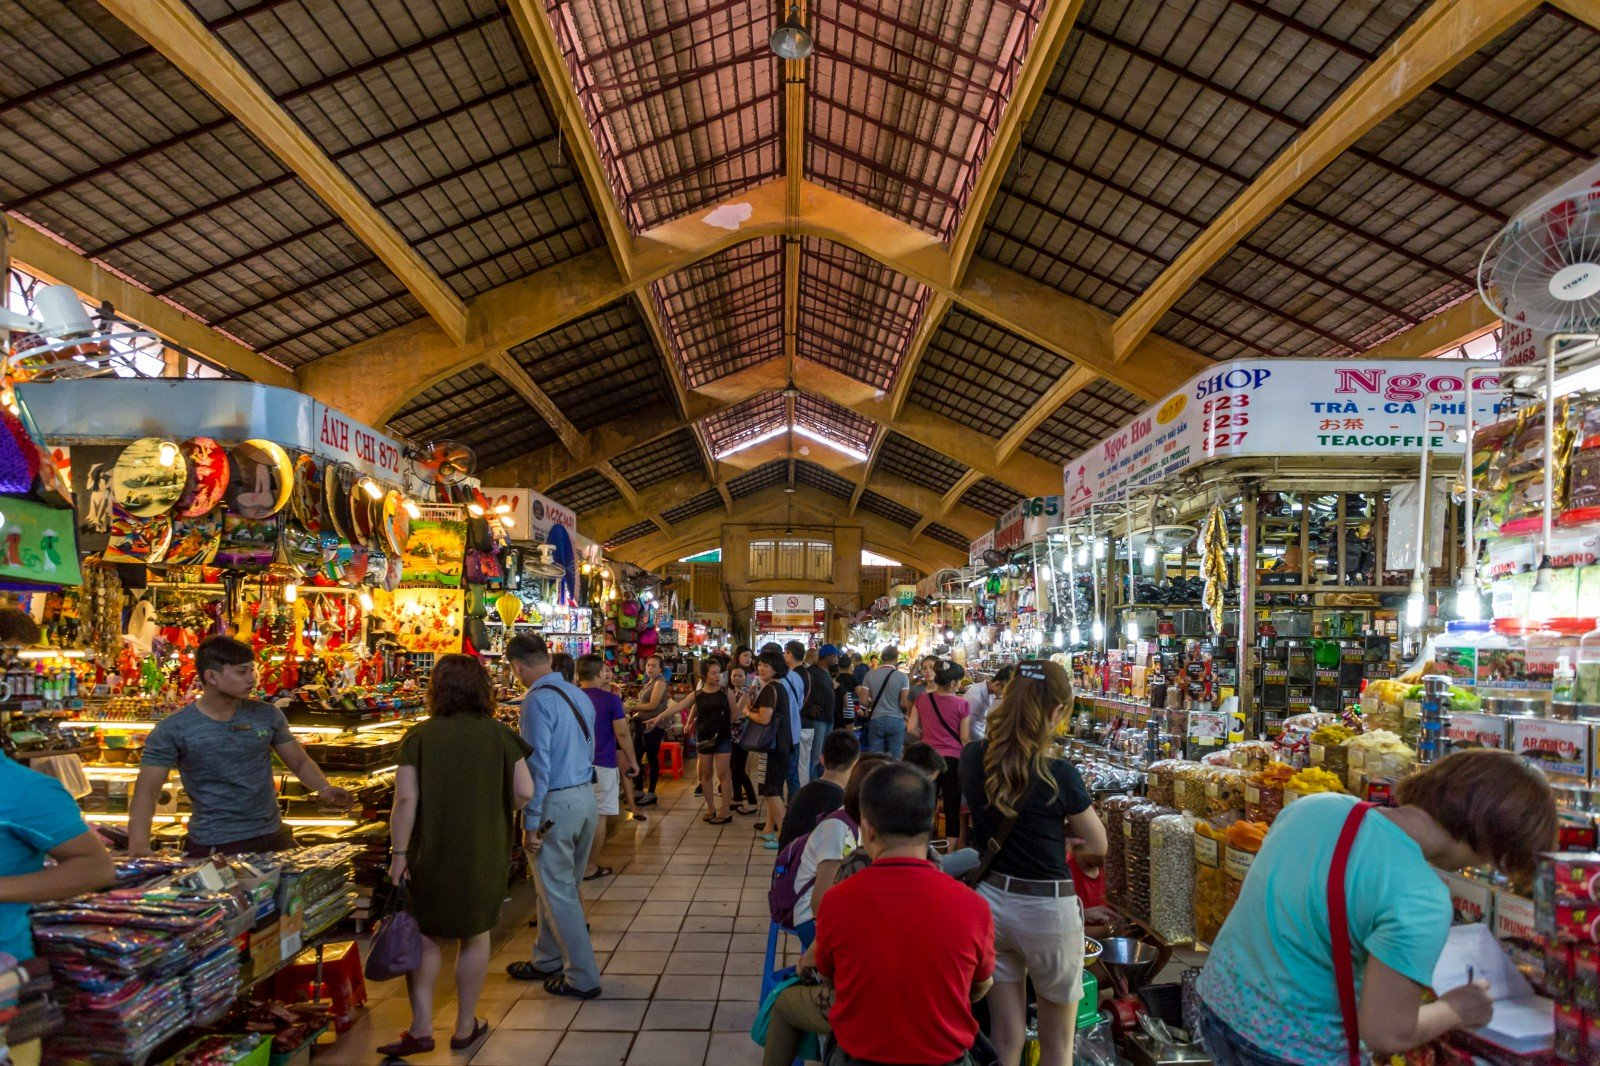 Ben Thanh Night Market - Things to do in Sai Gon at night